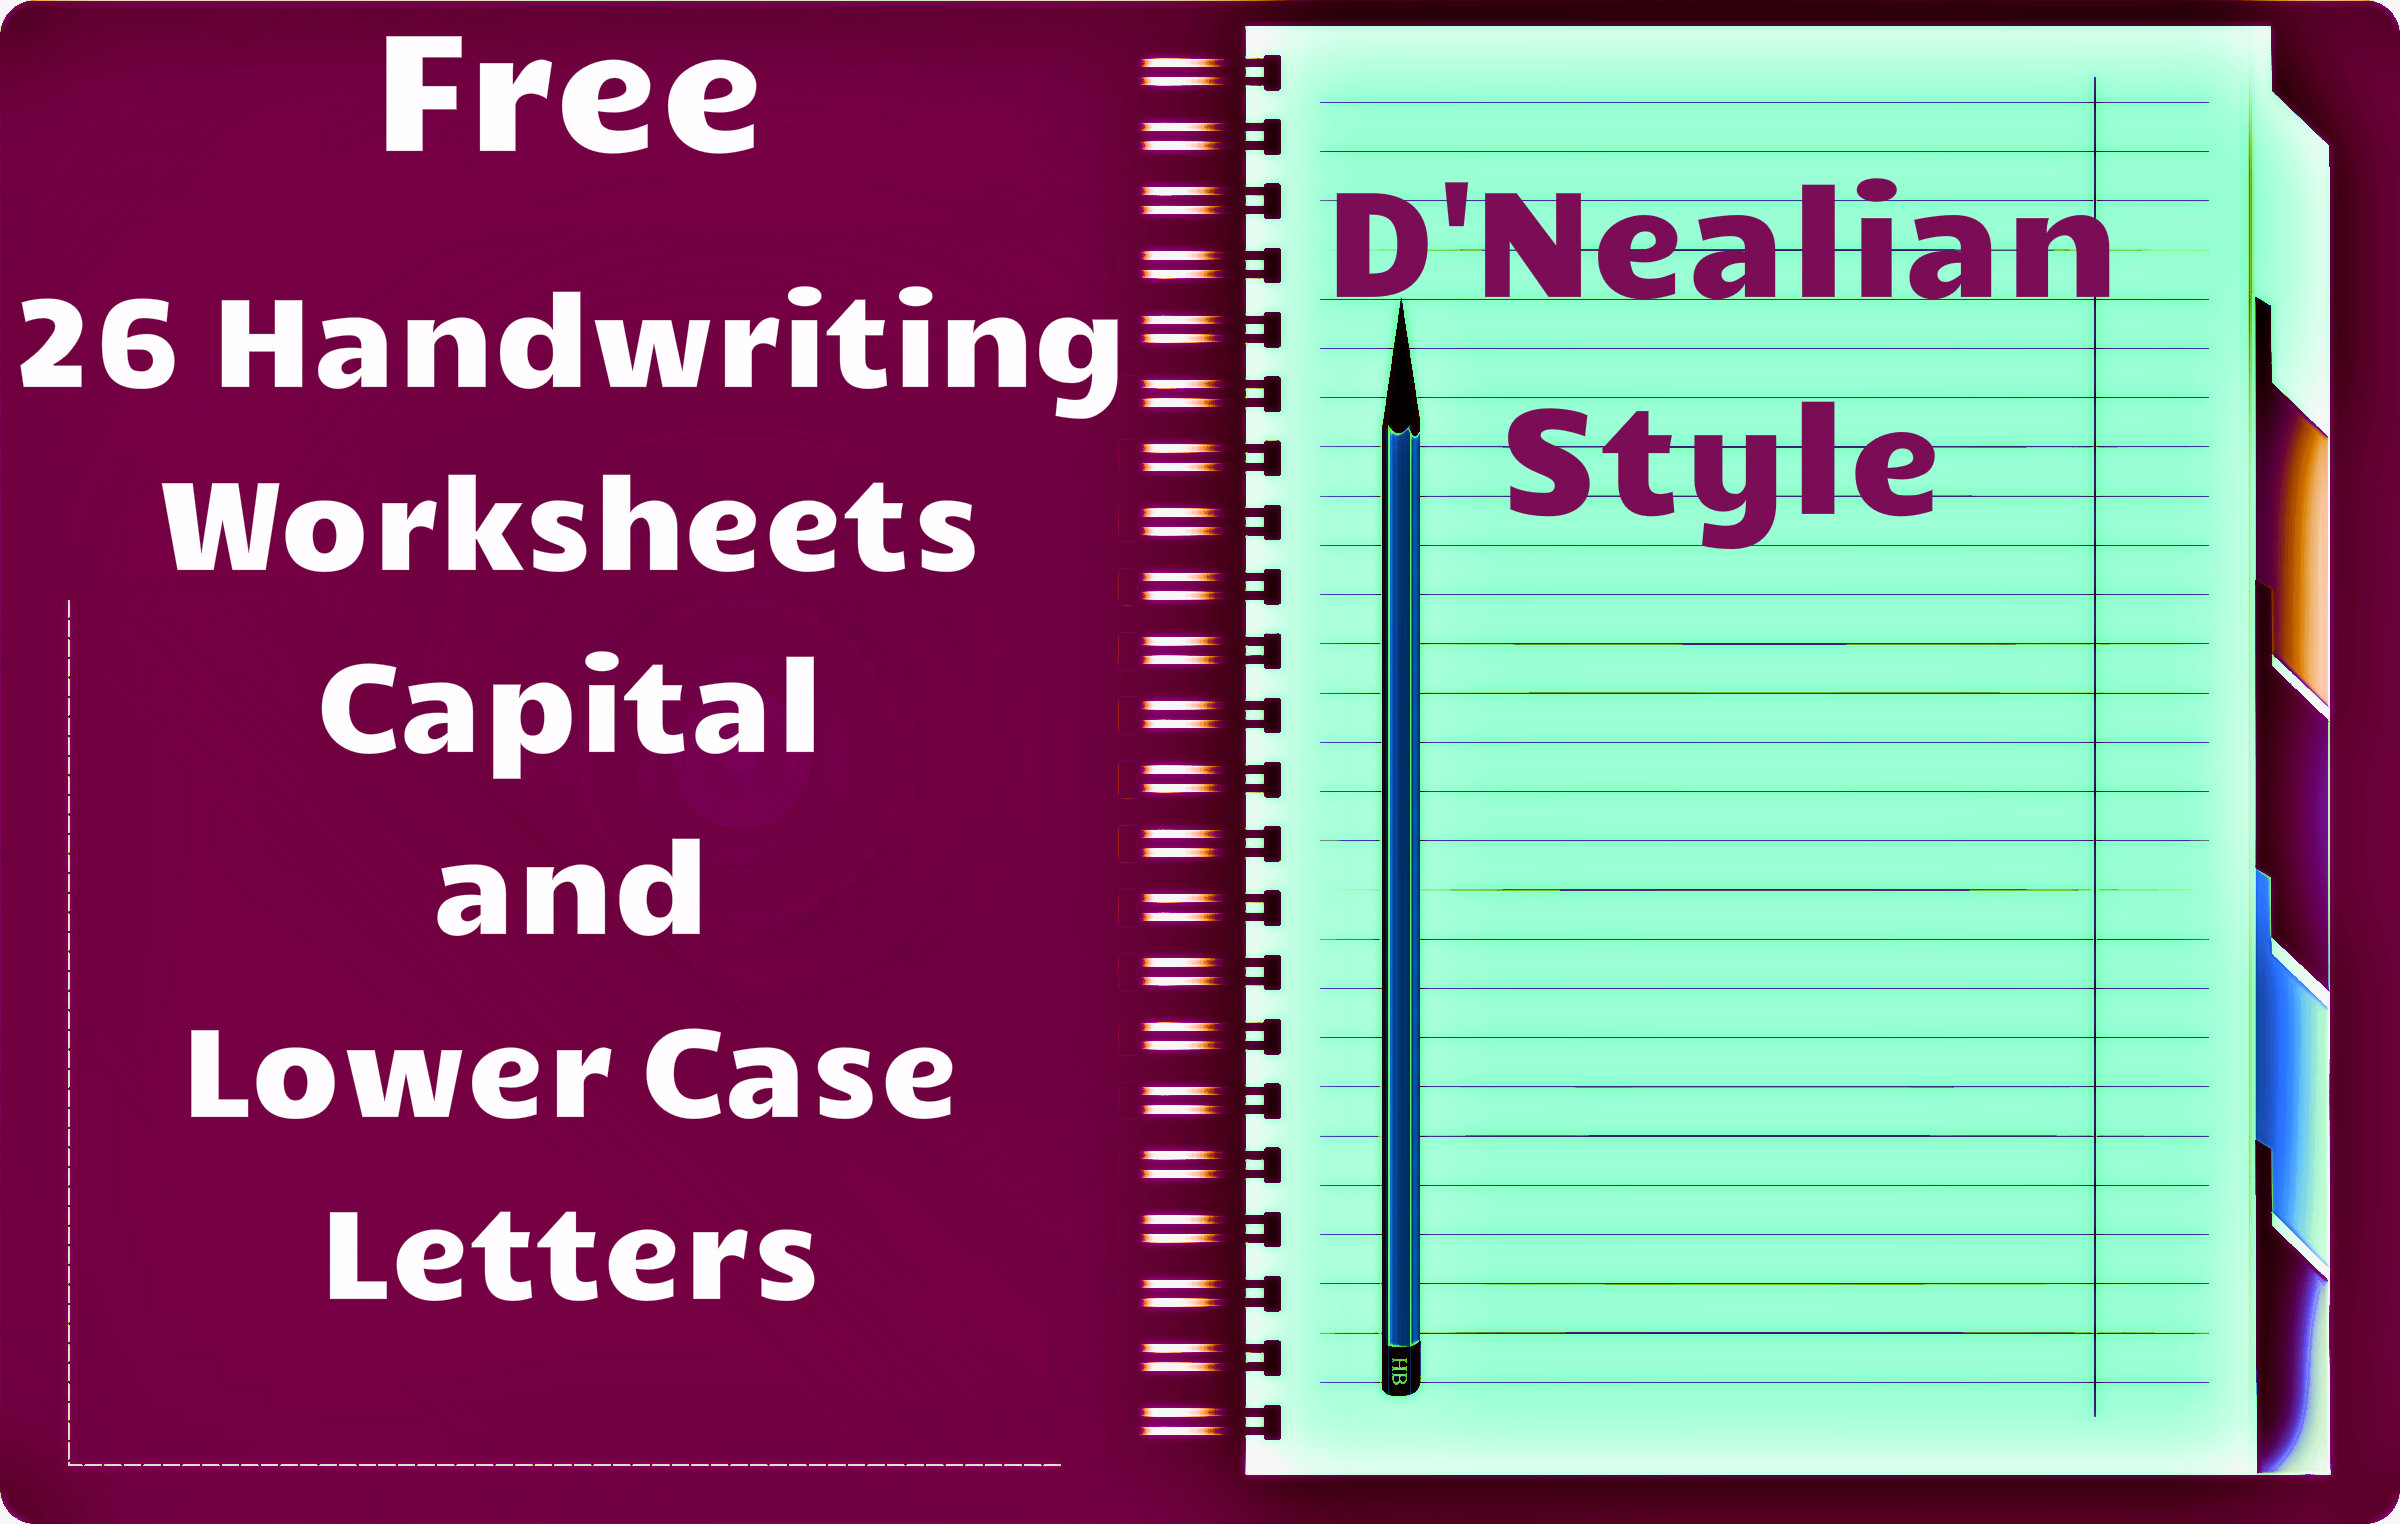 Free Handwriting Worksheets